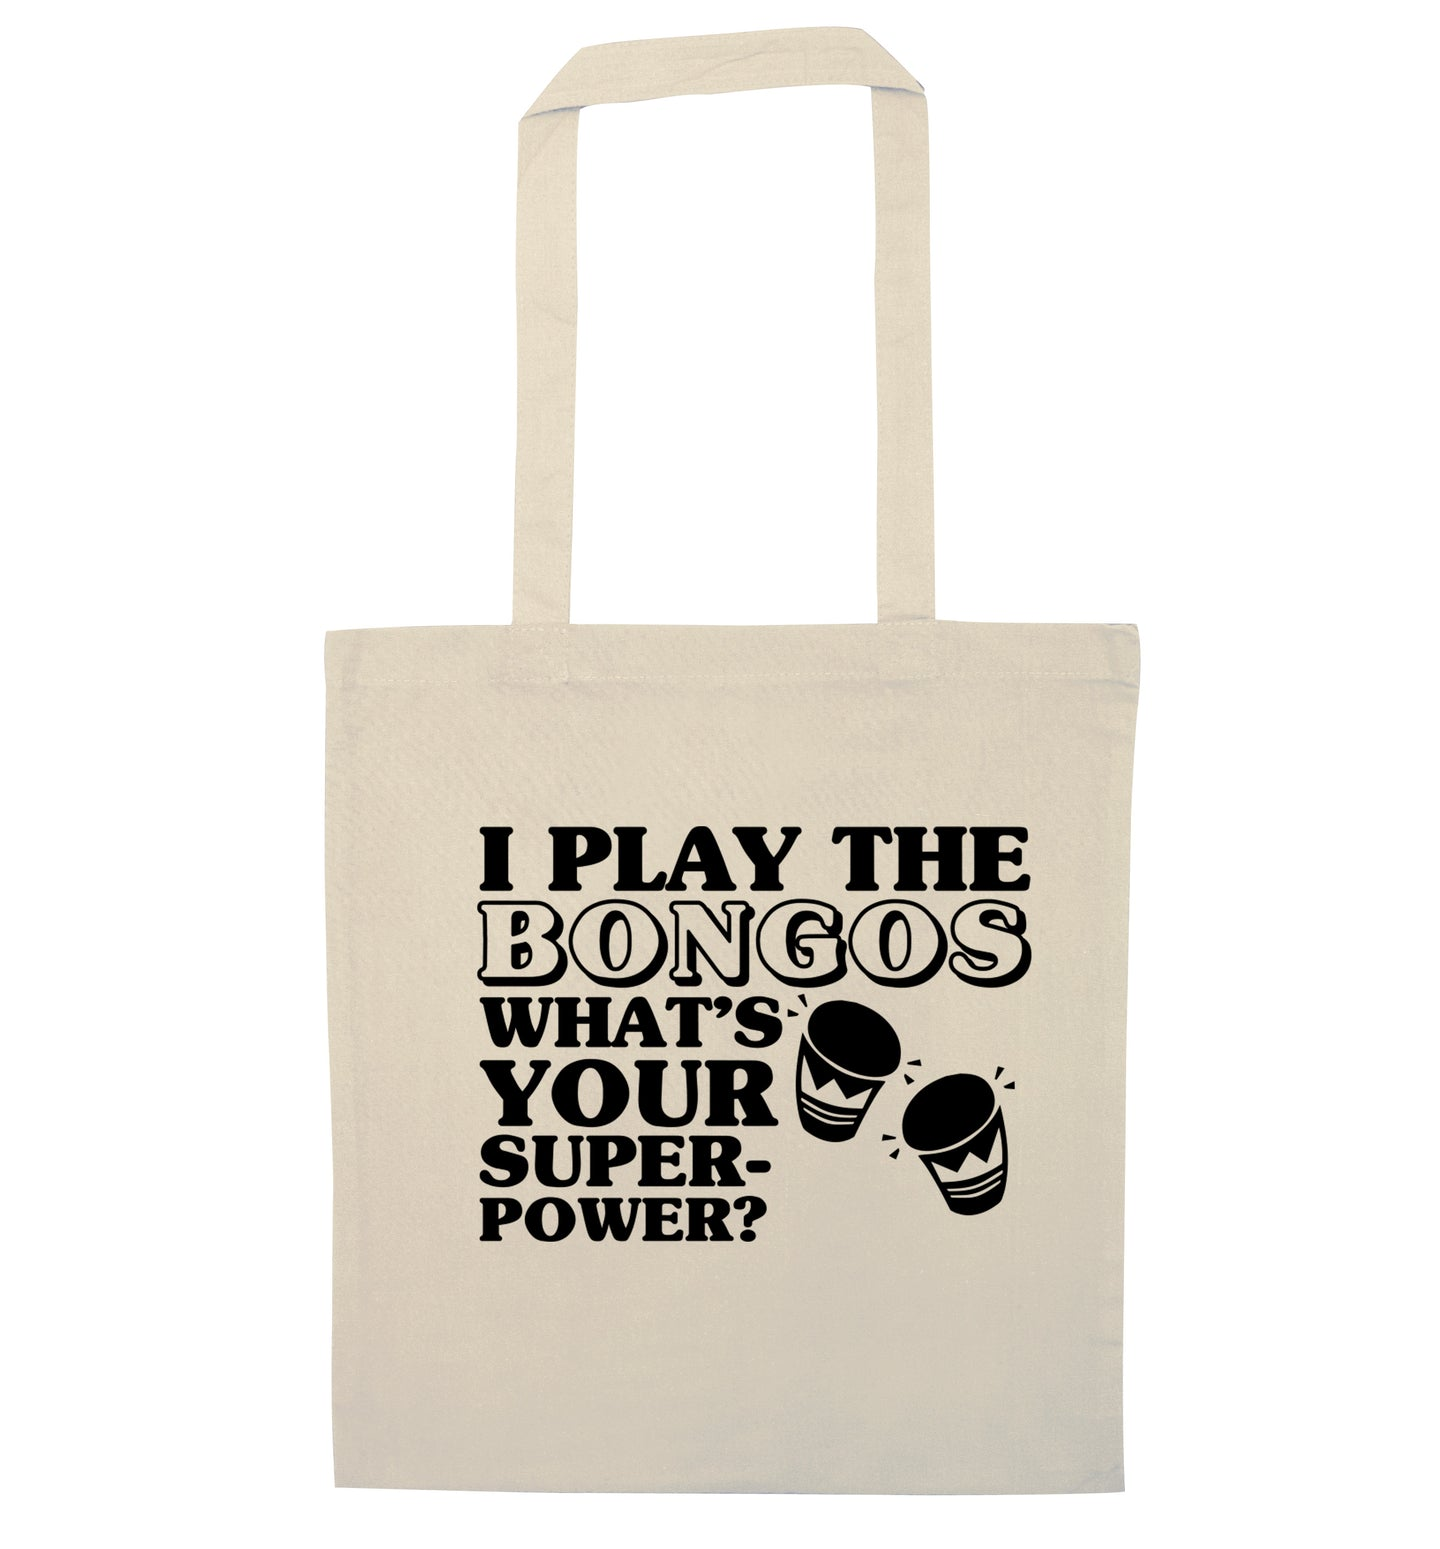 I play the bongos what's your superpower? natural tote bag